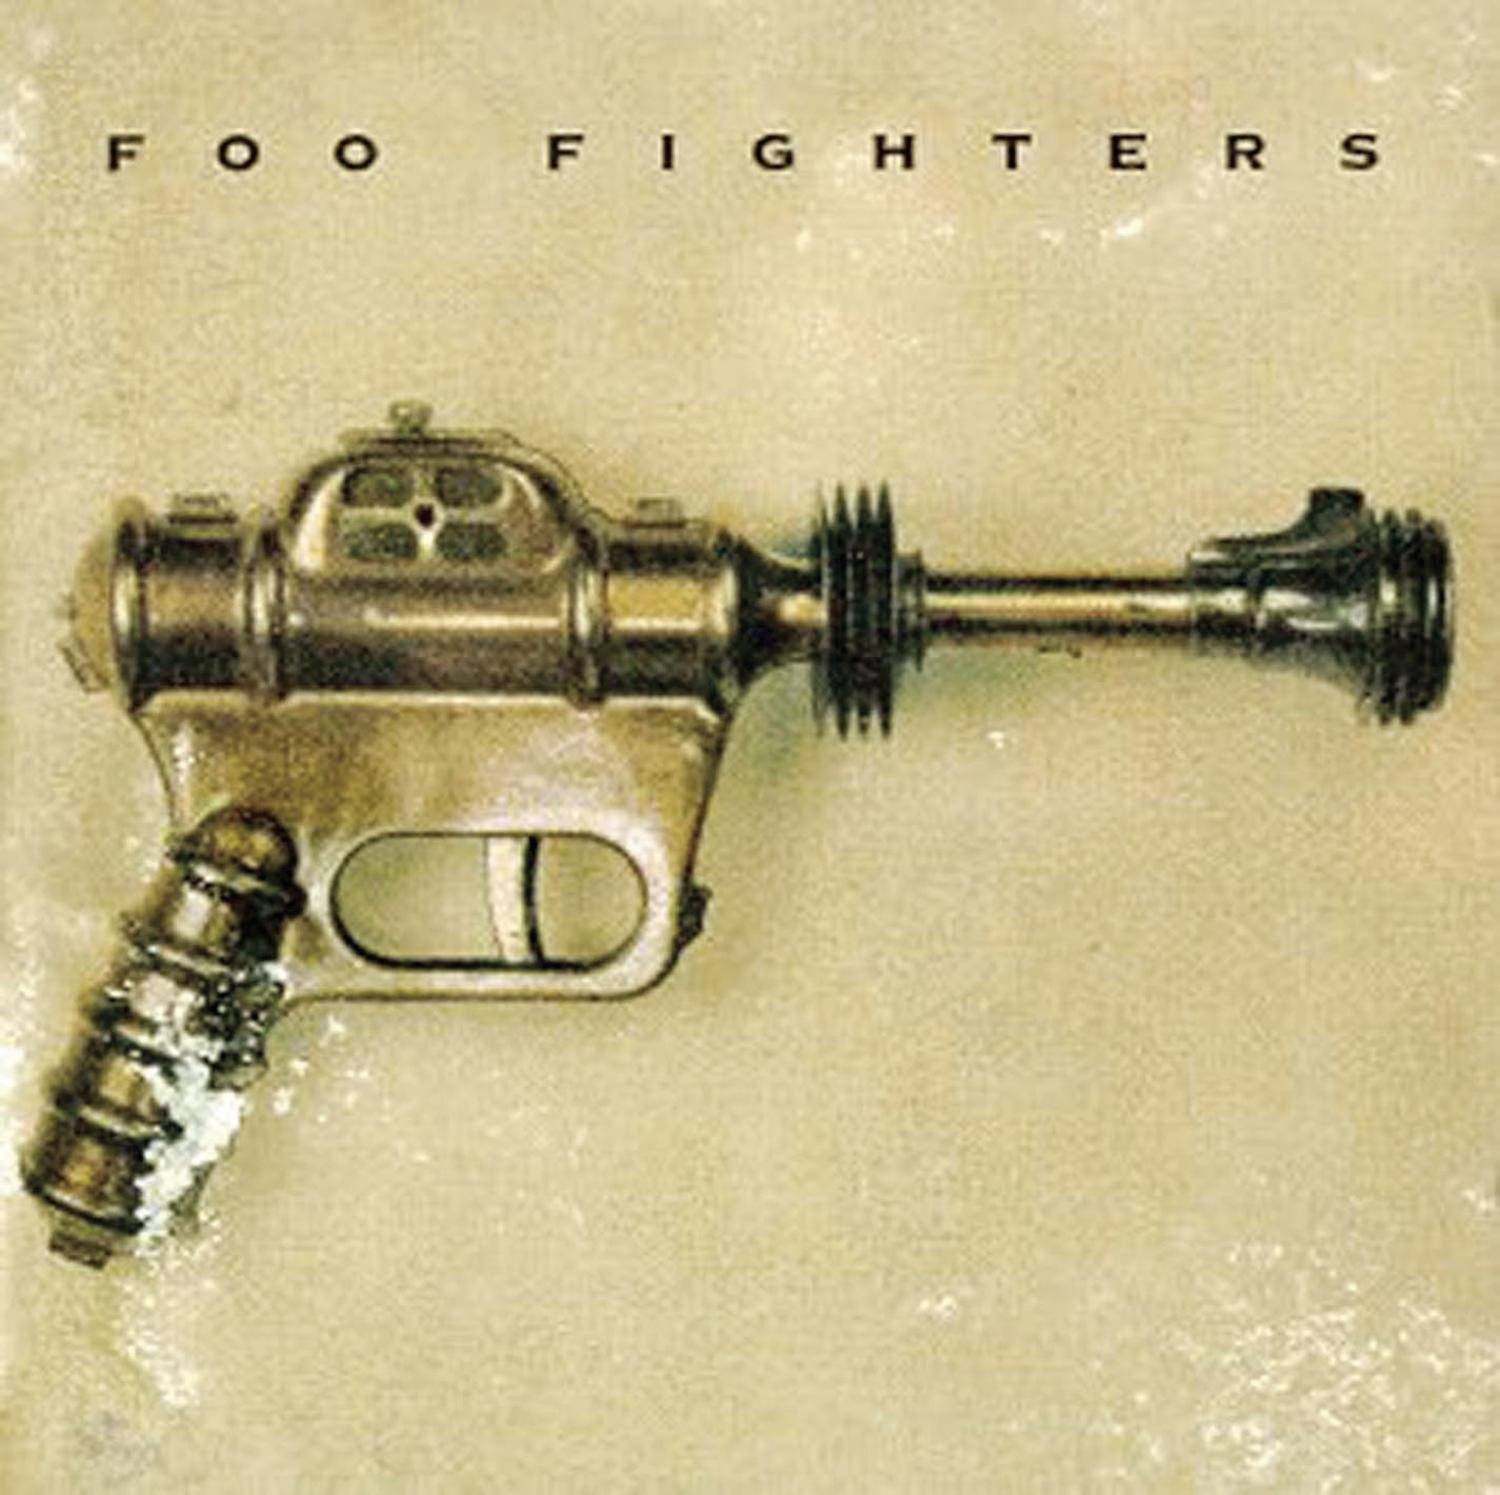 Image result for foo fighters foo fighters